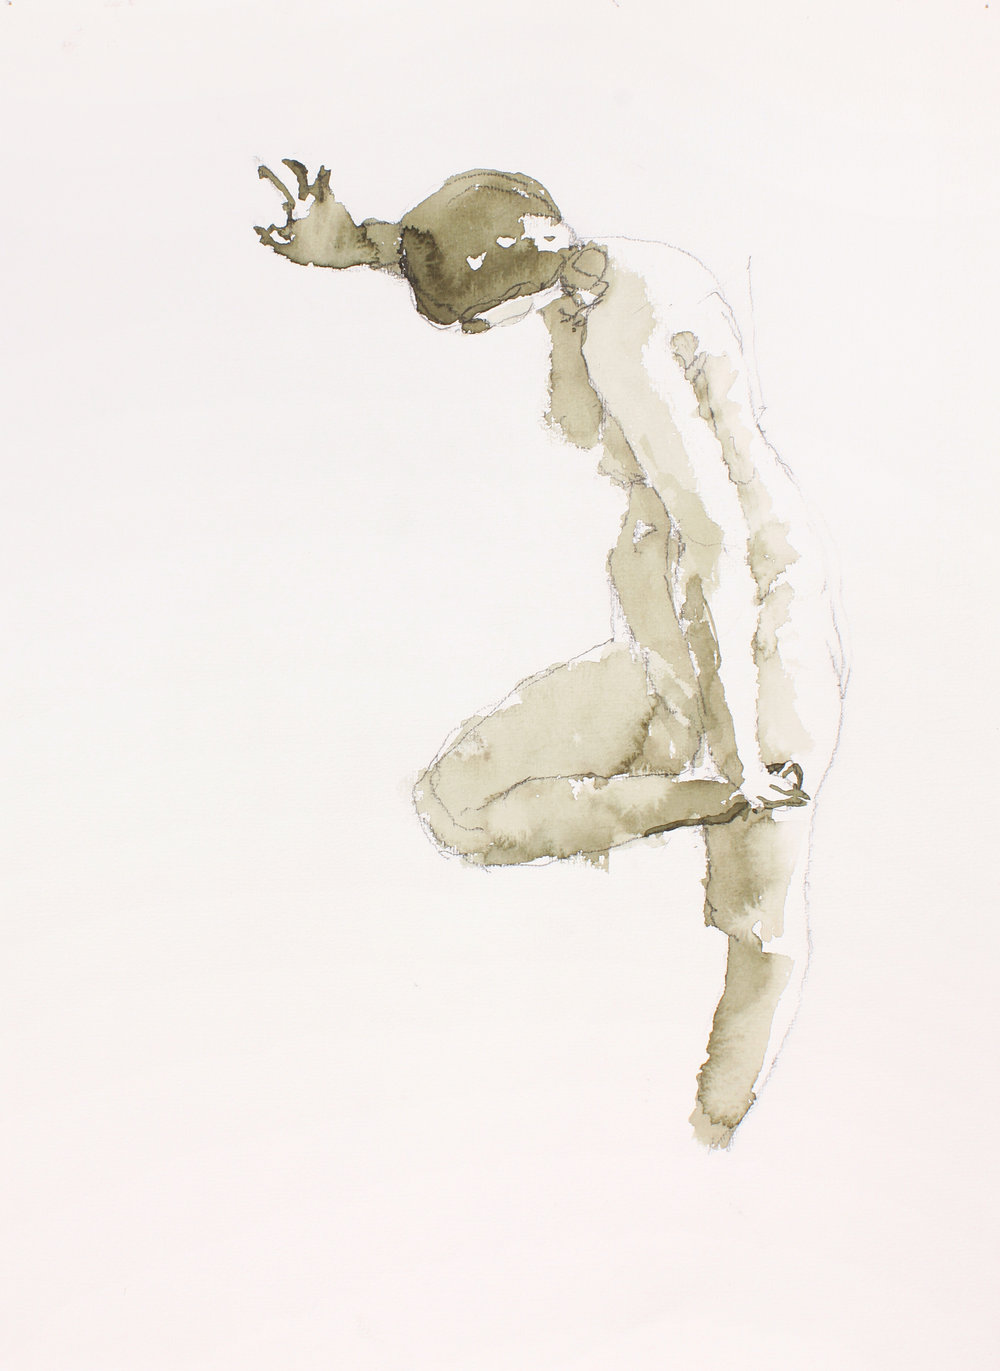 2004_Standing_Nude_Holding_Bent_Leg_watercolour_and_pencil_on_paper_15x11inches_WPF097.jpg